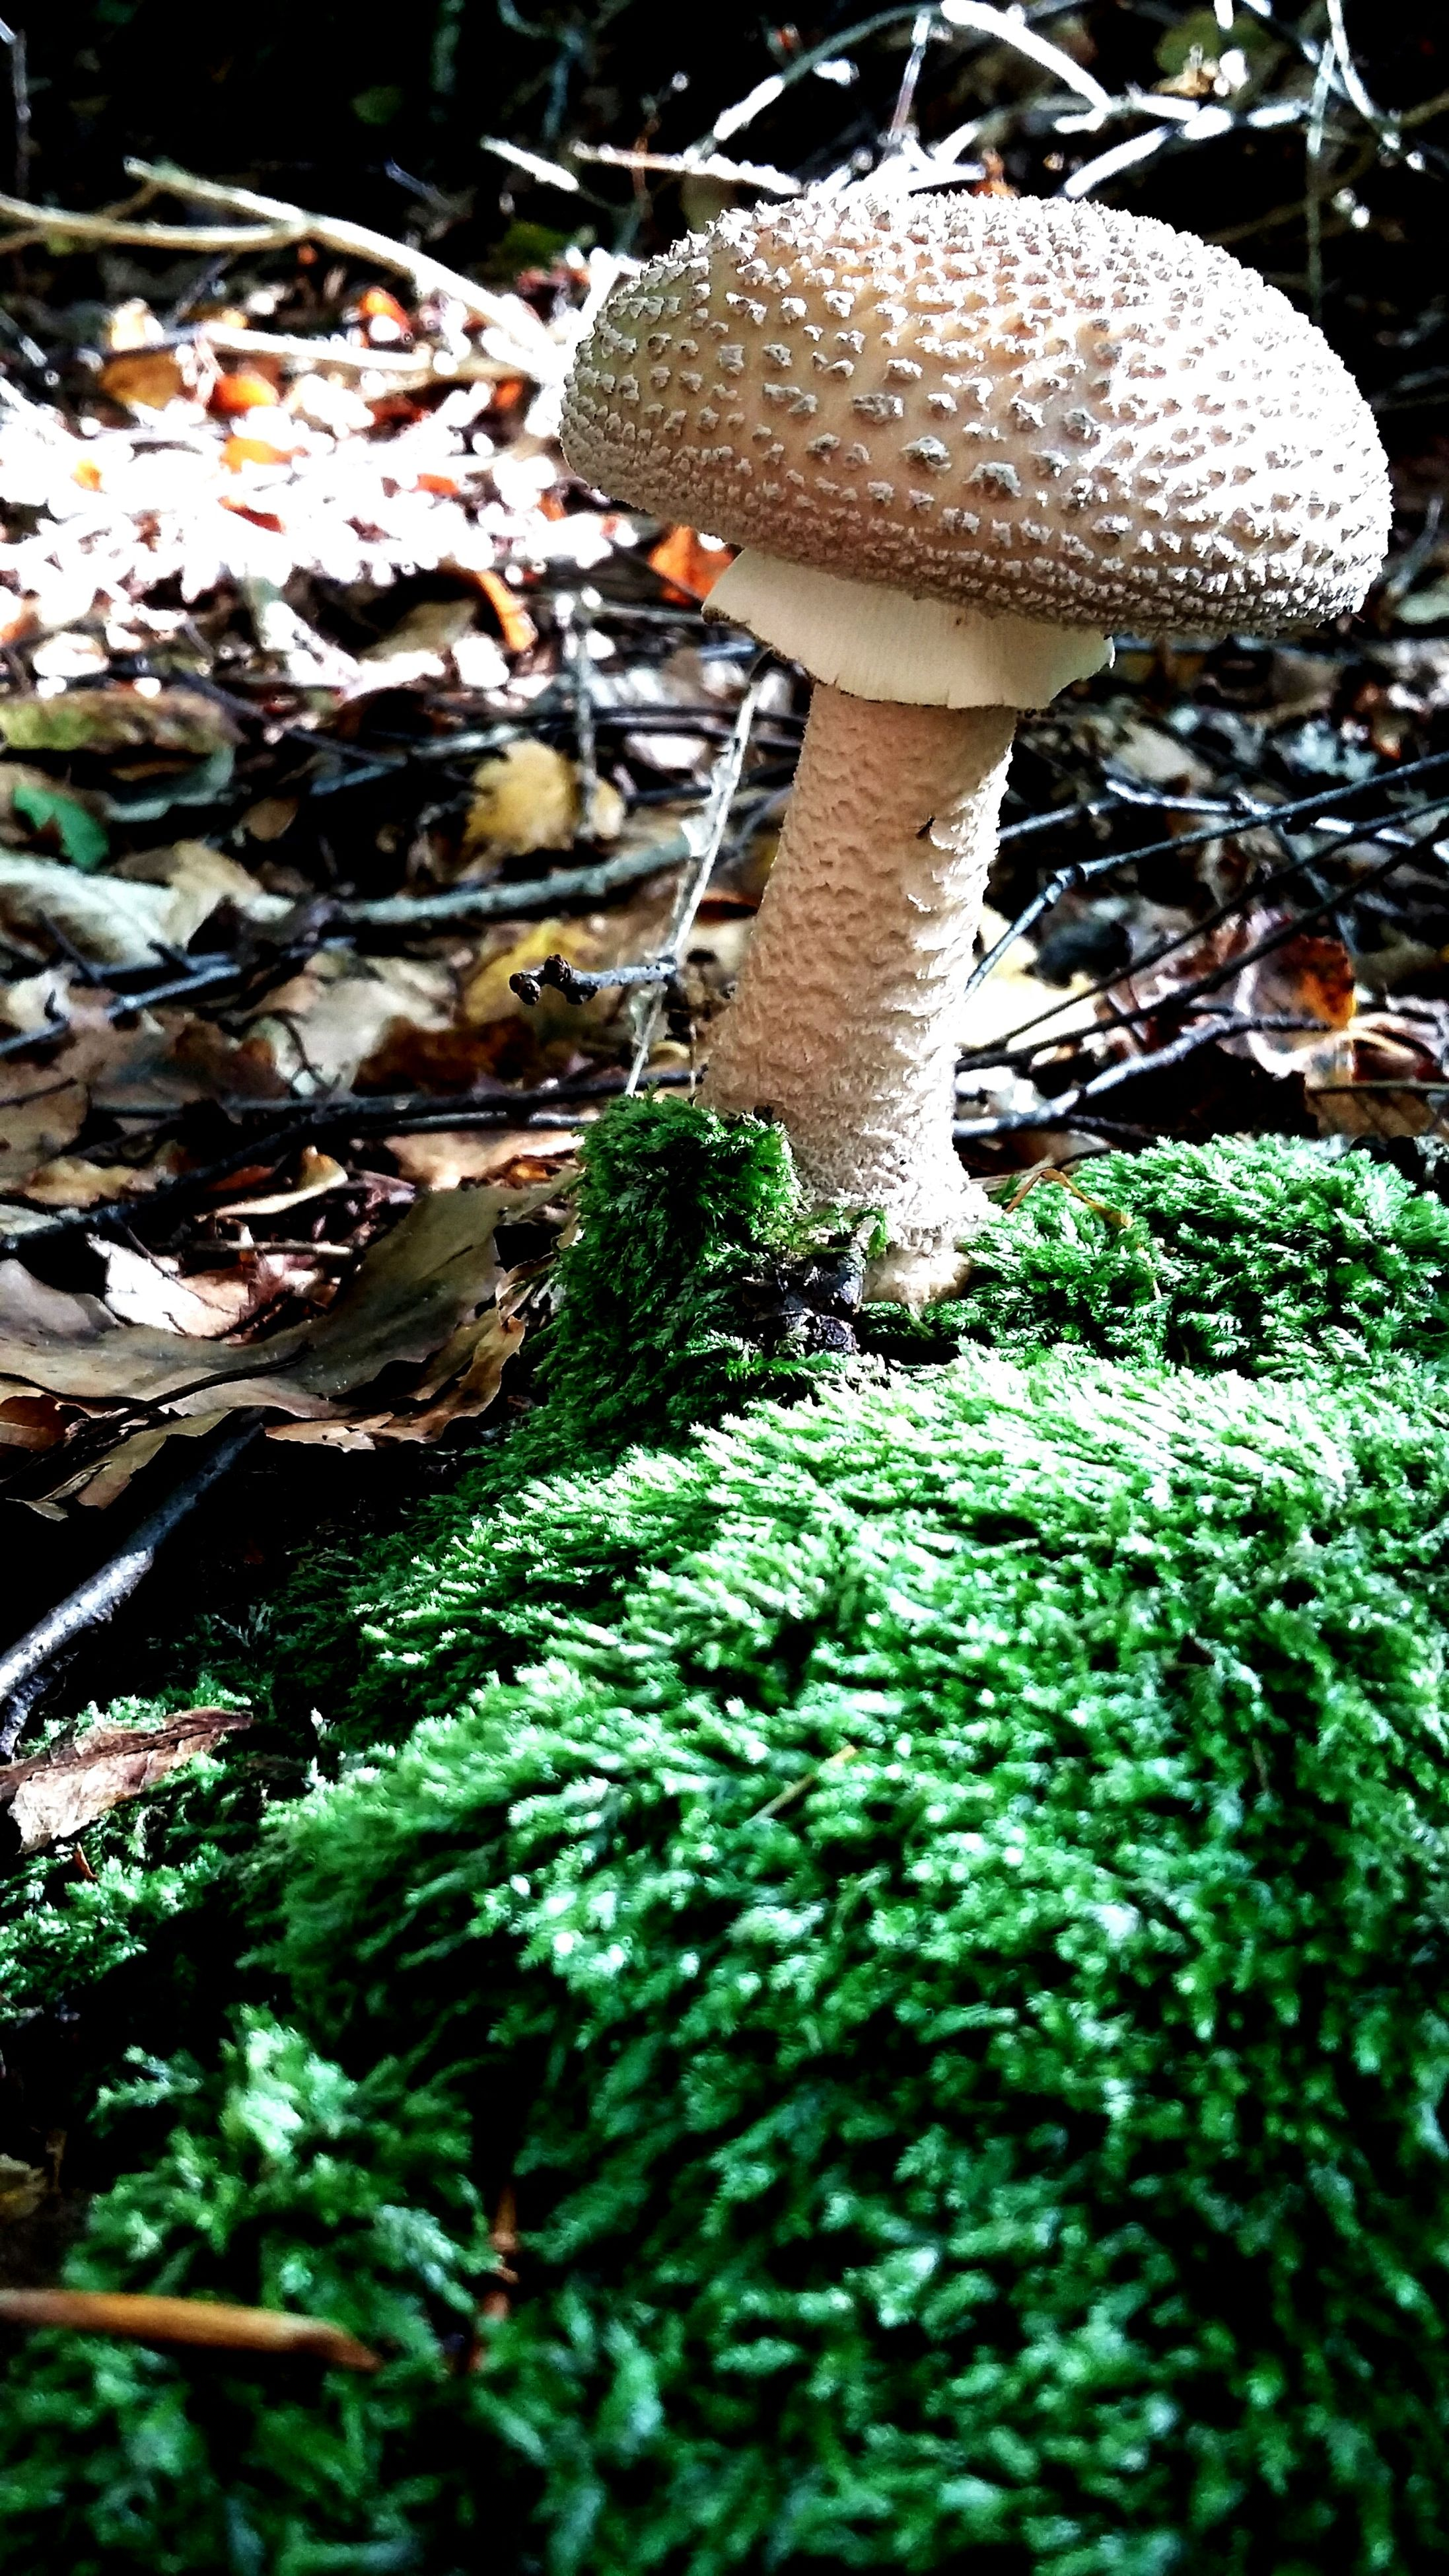 growth, fungus, moss, mushroom, plant, nature, leaf, green color, rock - object, close-up, forest, growing, beauty in nature, high angle view, tranquility, outdoors, freshness, day, no people, tree